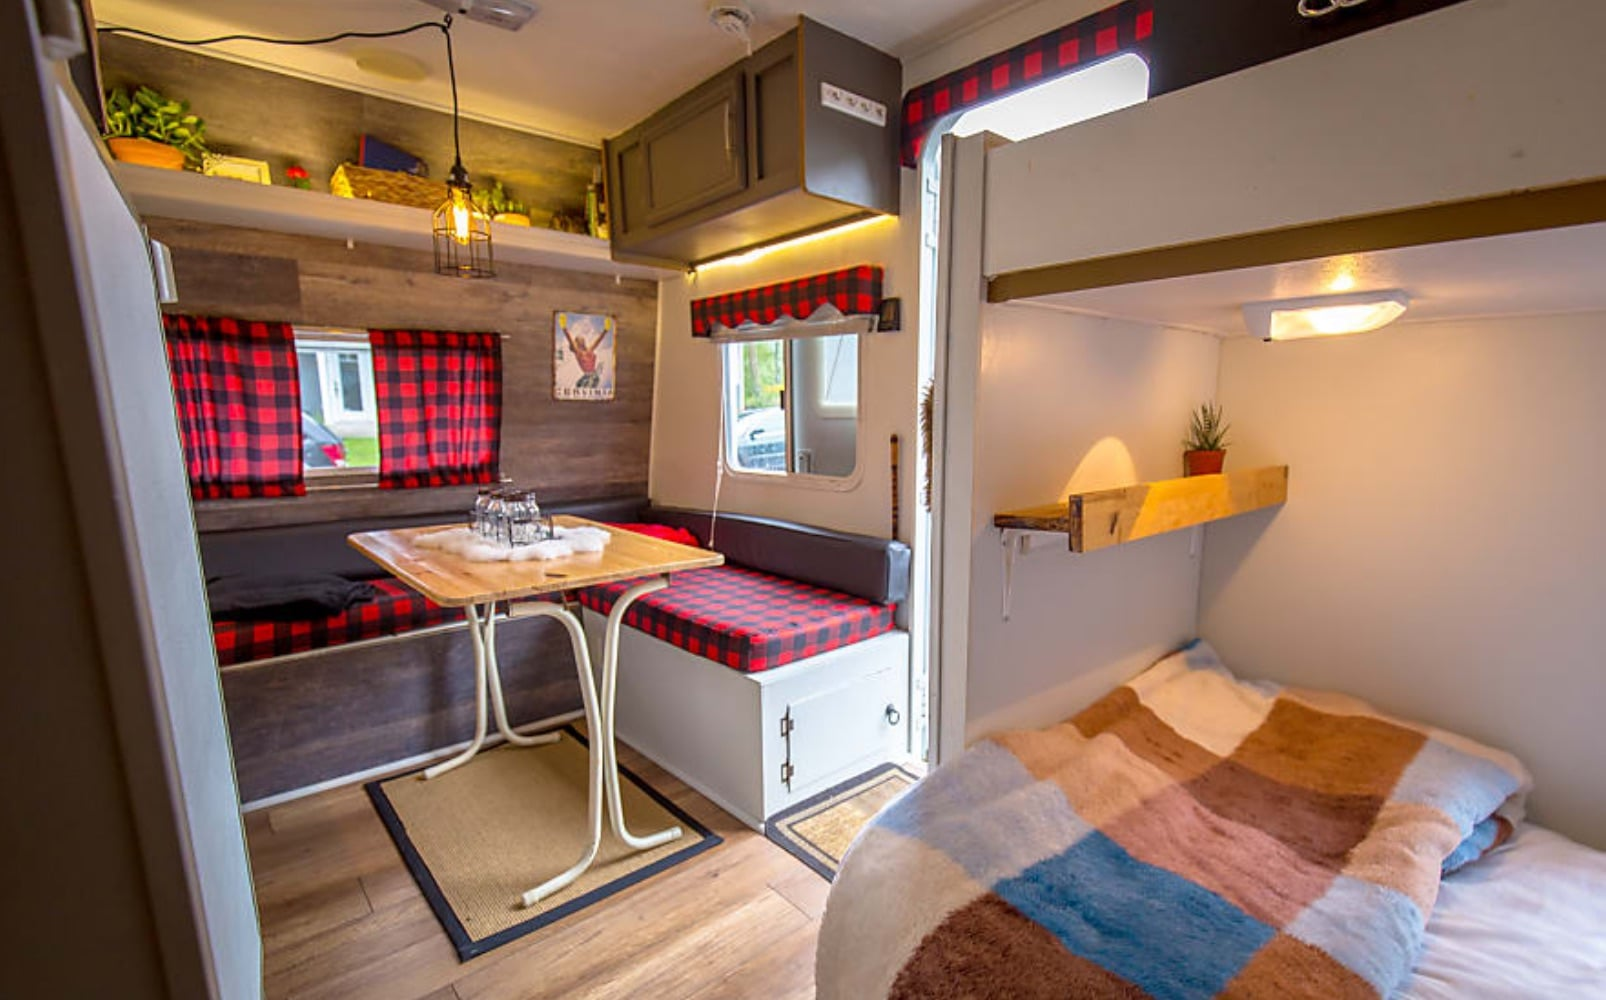 7 Of The Coolest Camper Vans You Can Rent In BC